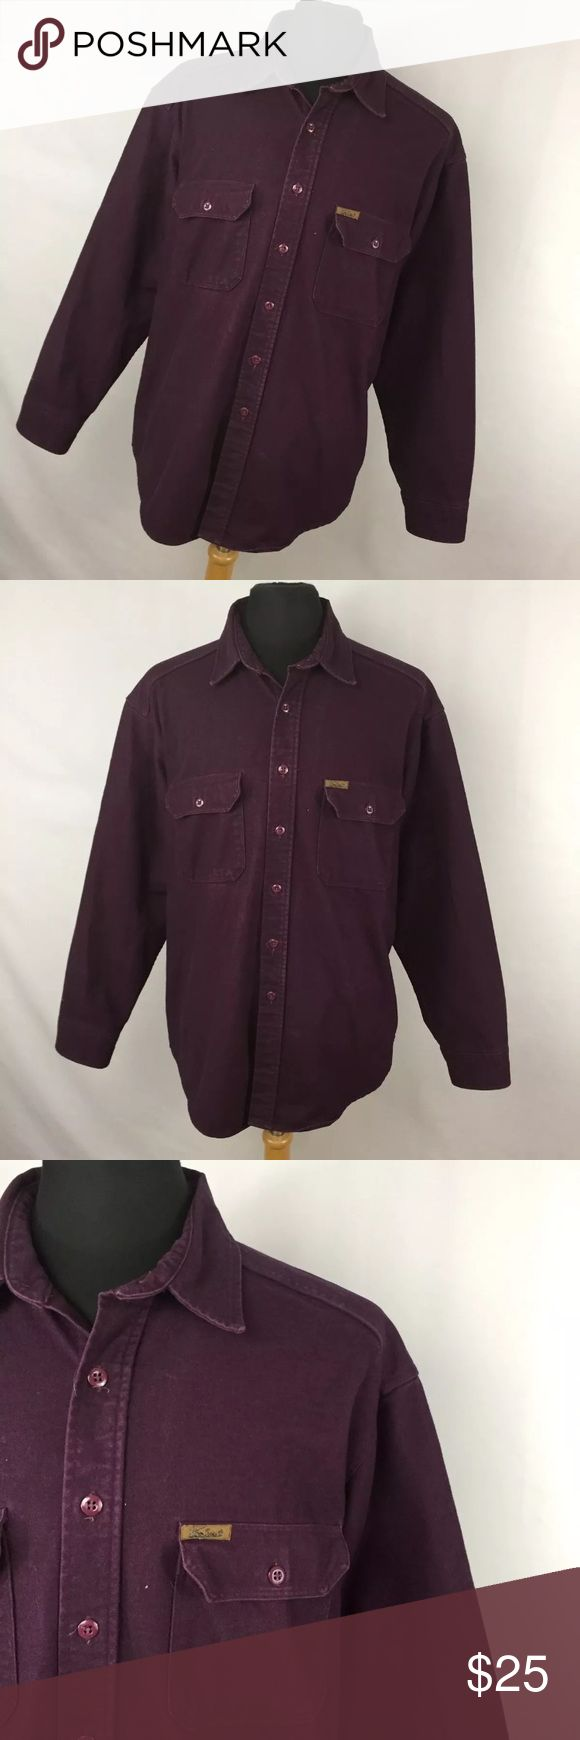 Woolrich XL Expedition Chamois Shirt Plum Purple Woolrich XL Expedition Chamois Shirt Plum Purple Button Down Thick Work. Excellent condition. Smoke free home. Woolrich XL Expedition Chamois Shirt Plum Purple Button Down Thick Work L2P Woolrich Shirts Casual Button Down Shirts